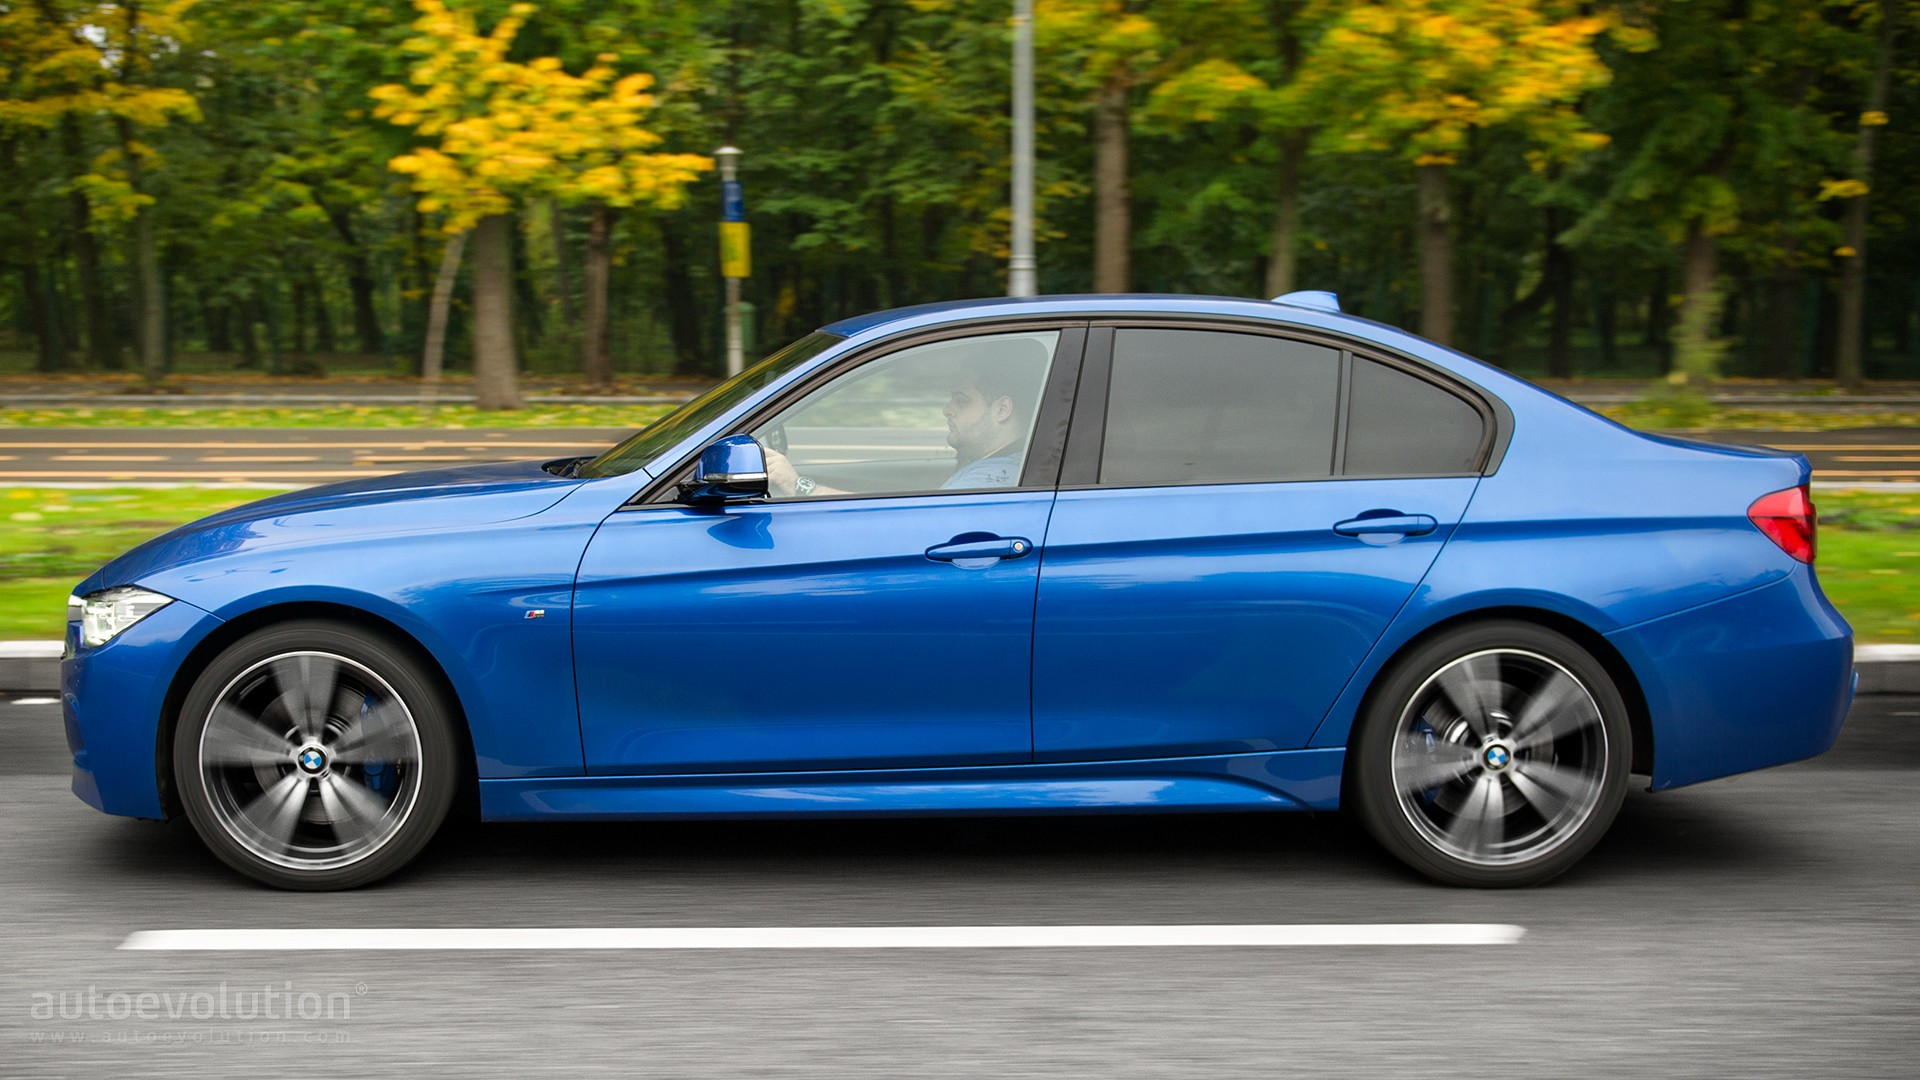 2016 BMW 320d xDrive Review - autoevolution